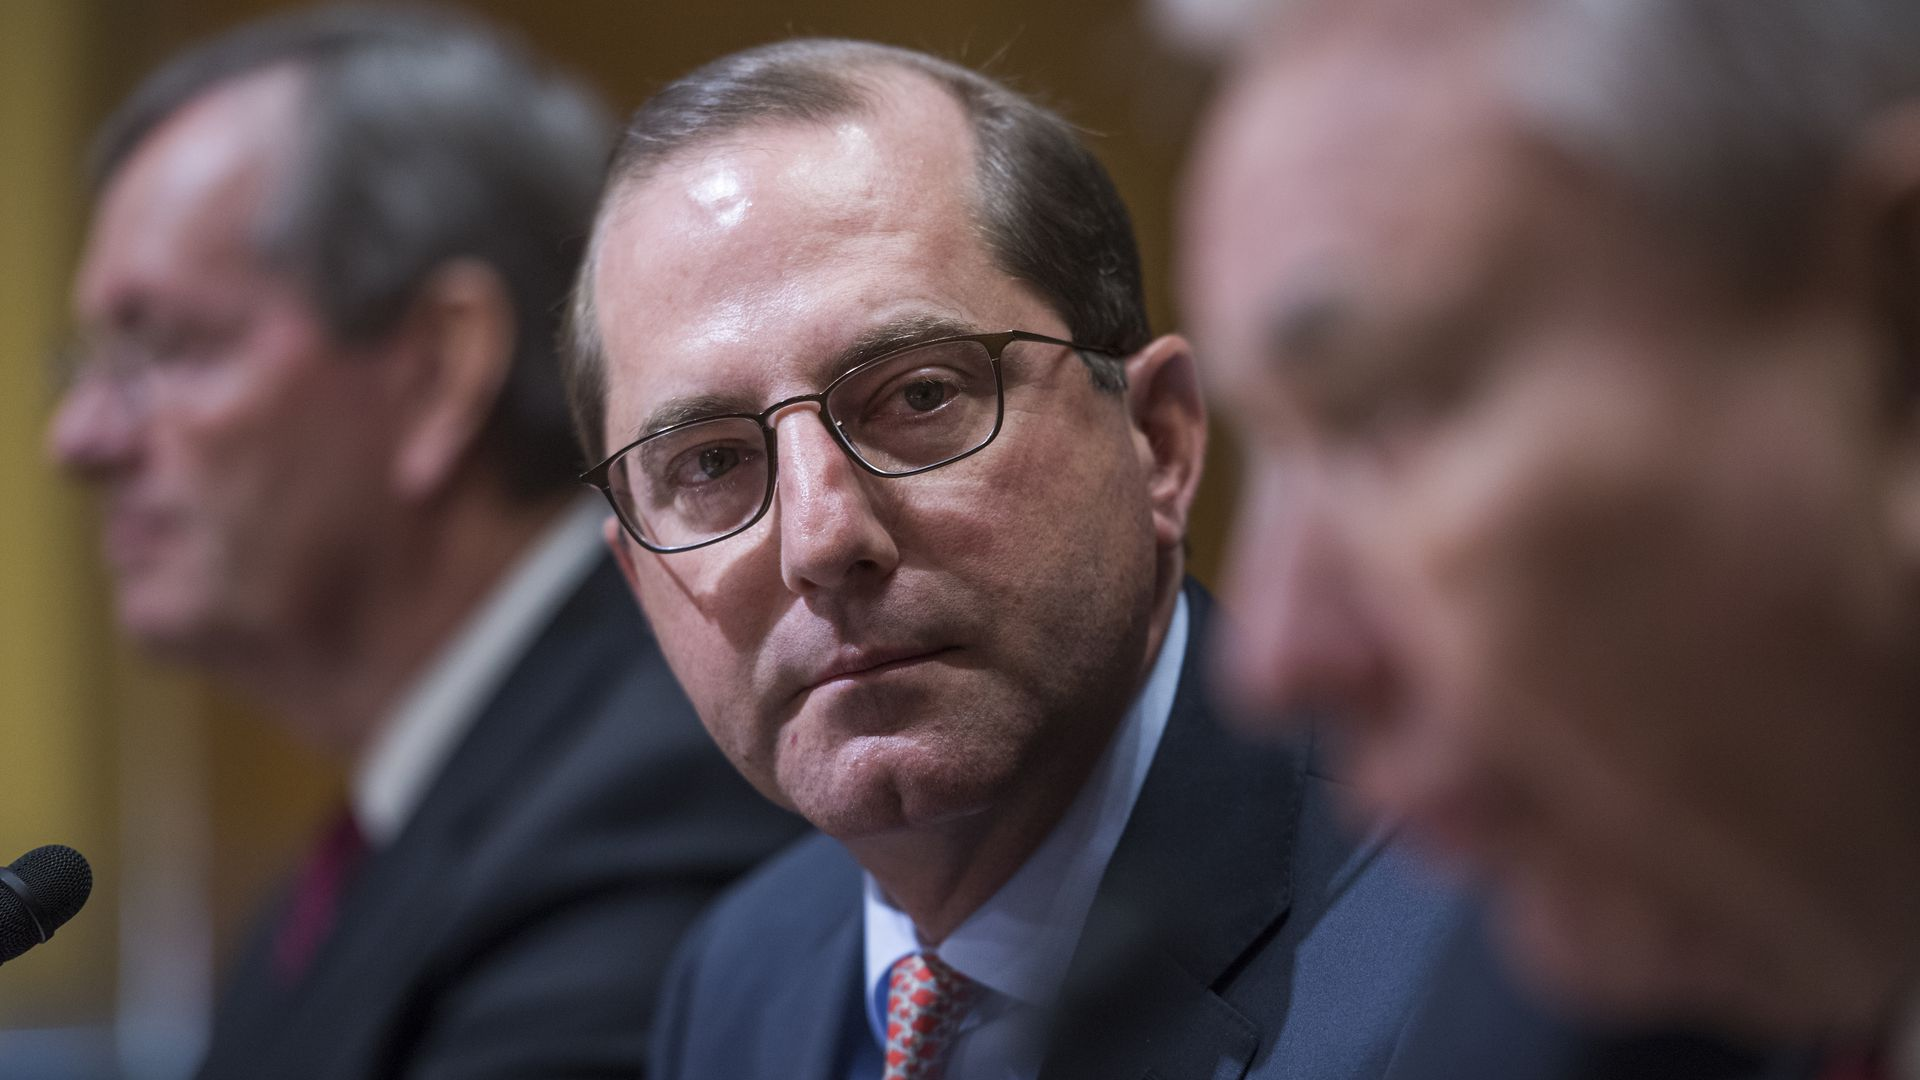 Alex Azar at confirmation hearing